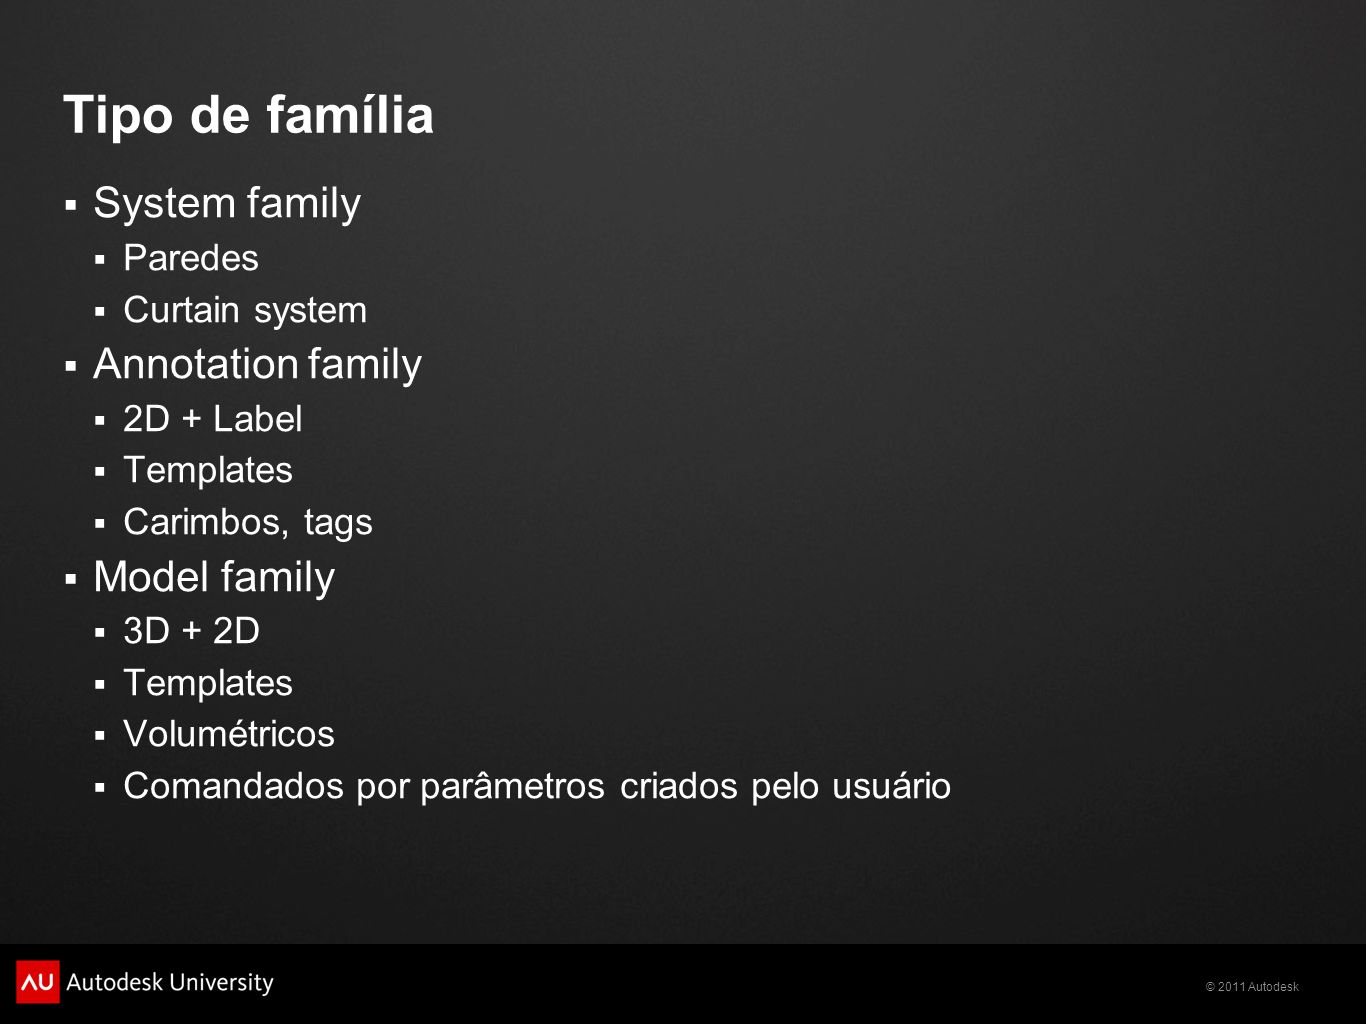 Tipo de família System family Annotation family Model family Paredes